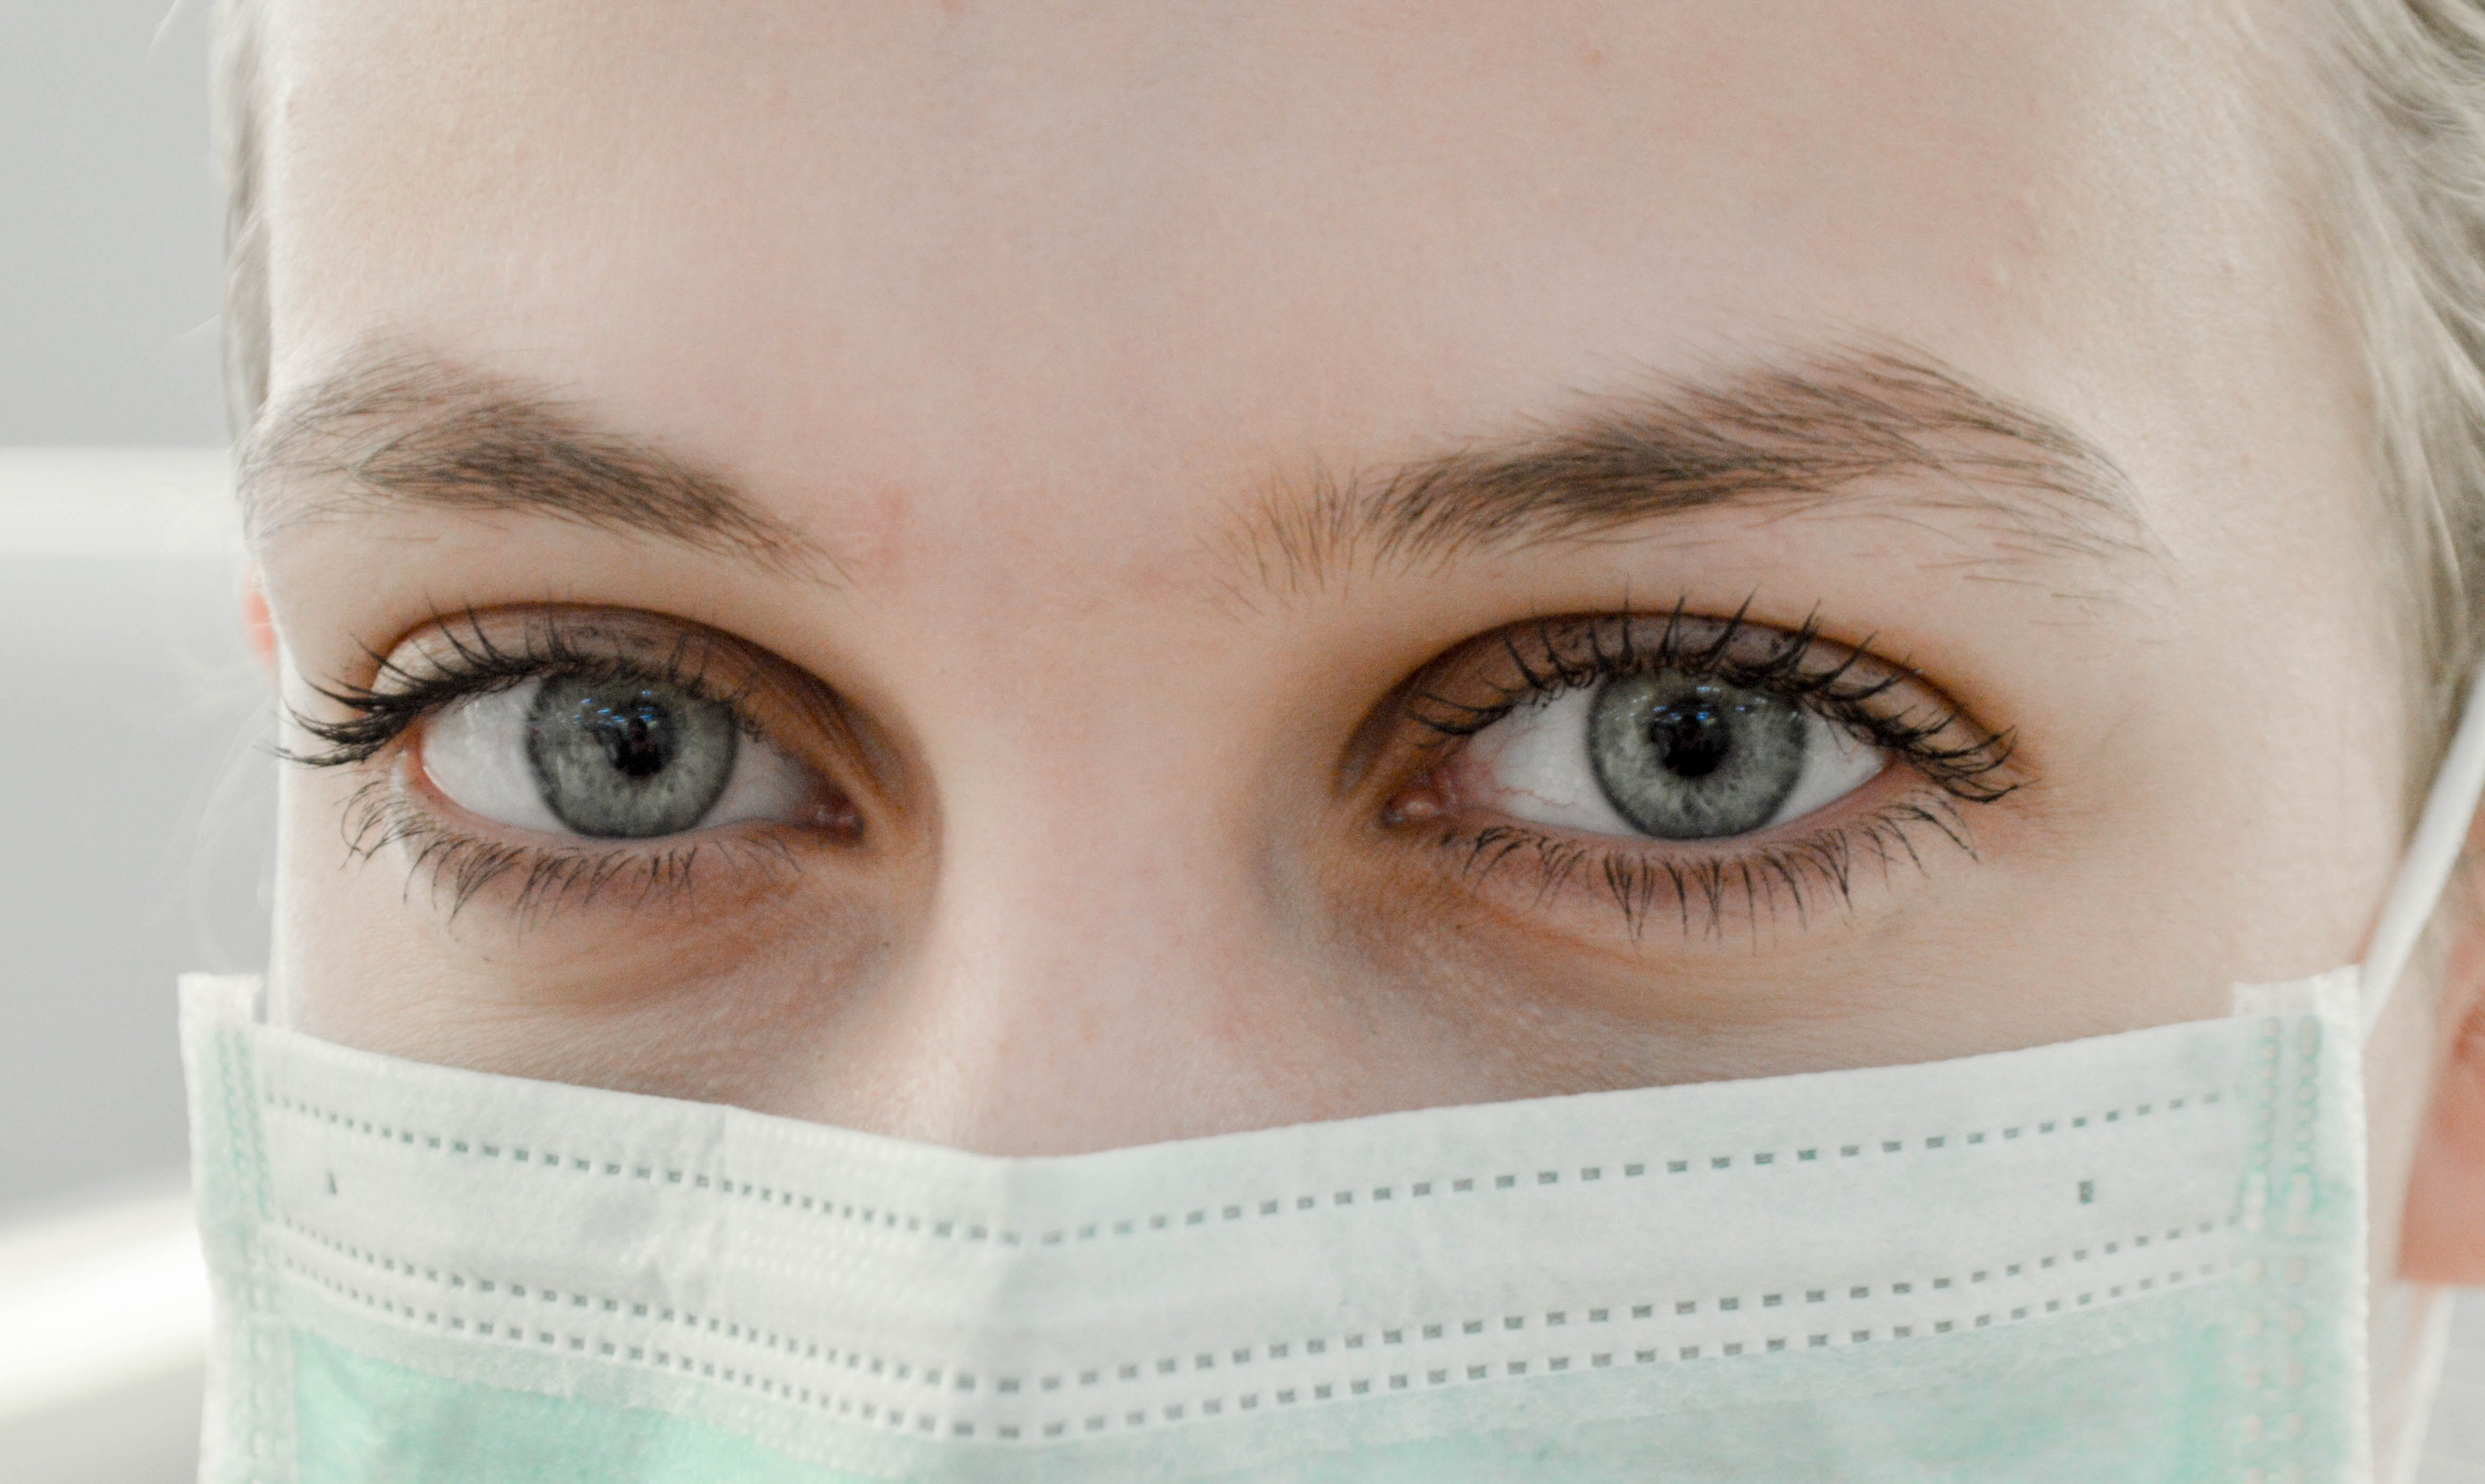 can hpv cause eye cancer